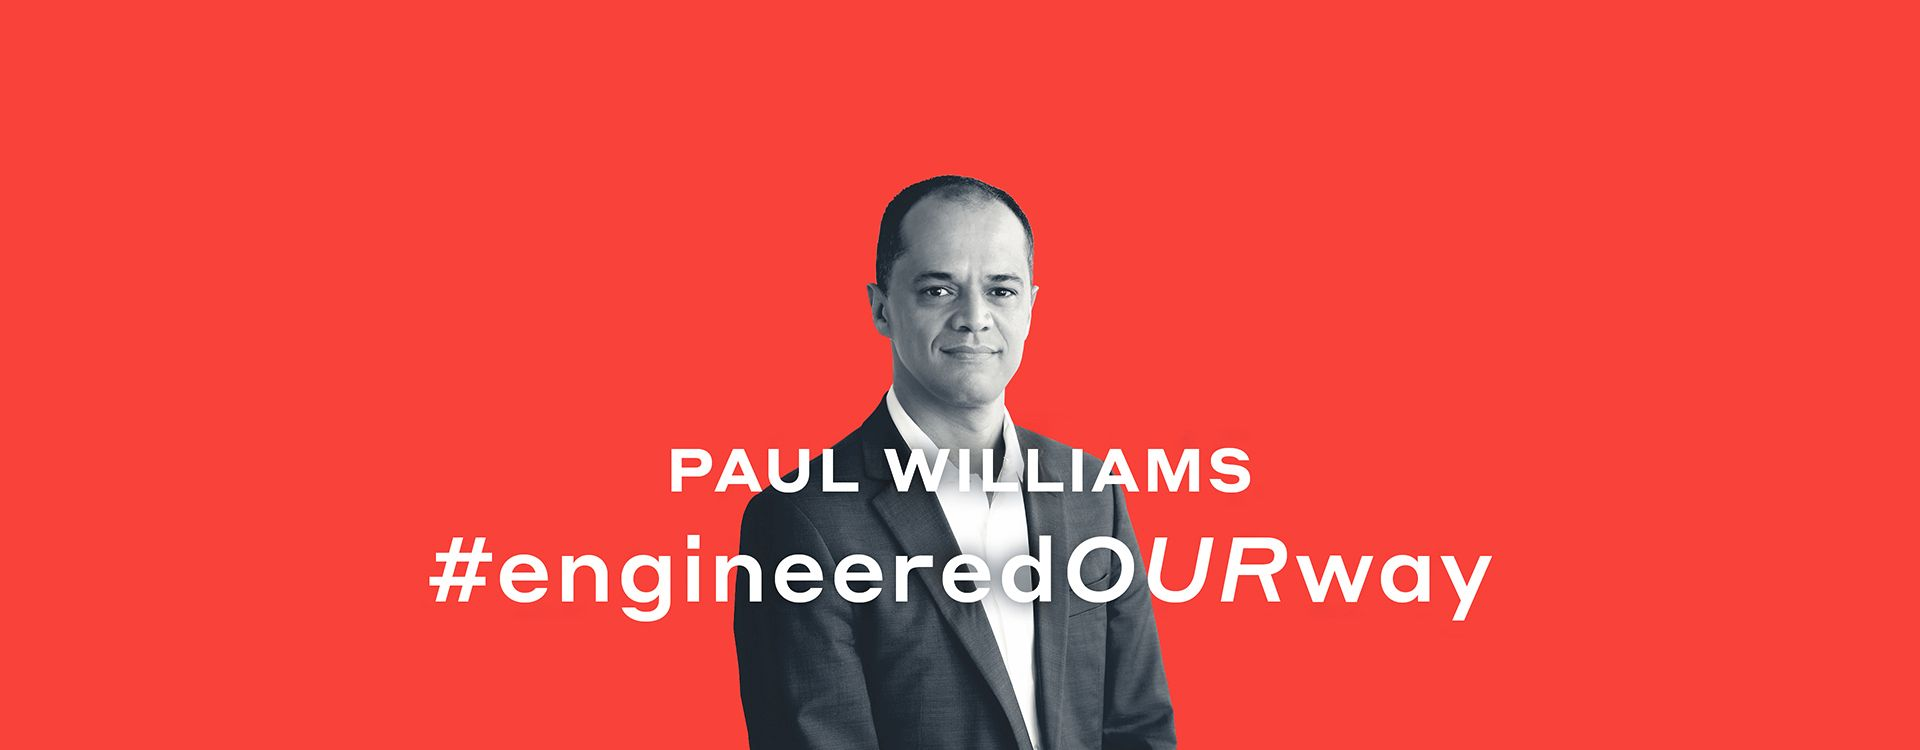 Paul Williams Powers Gender Balance Through Flexible Working